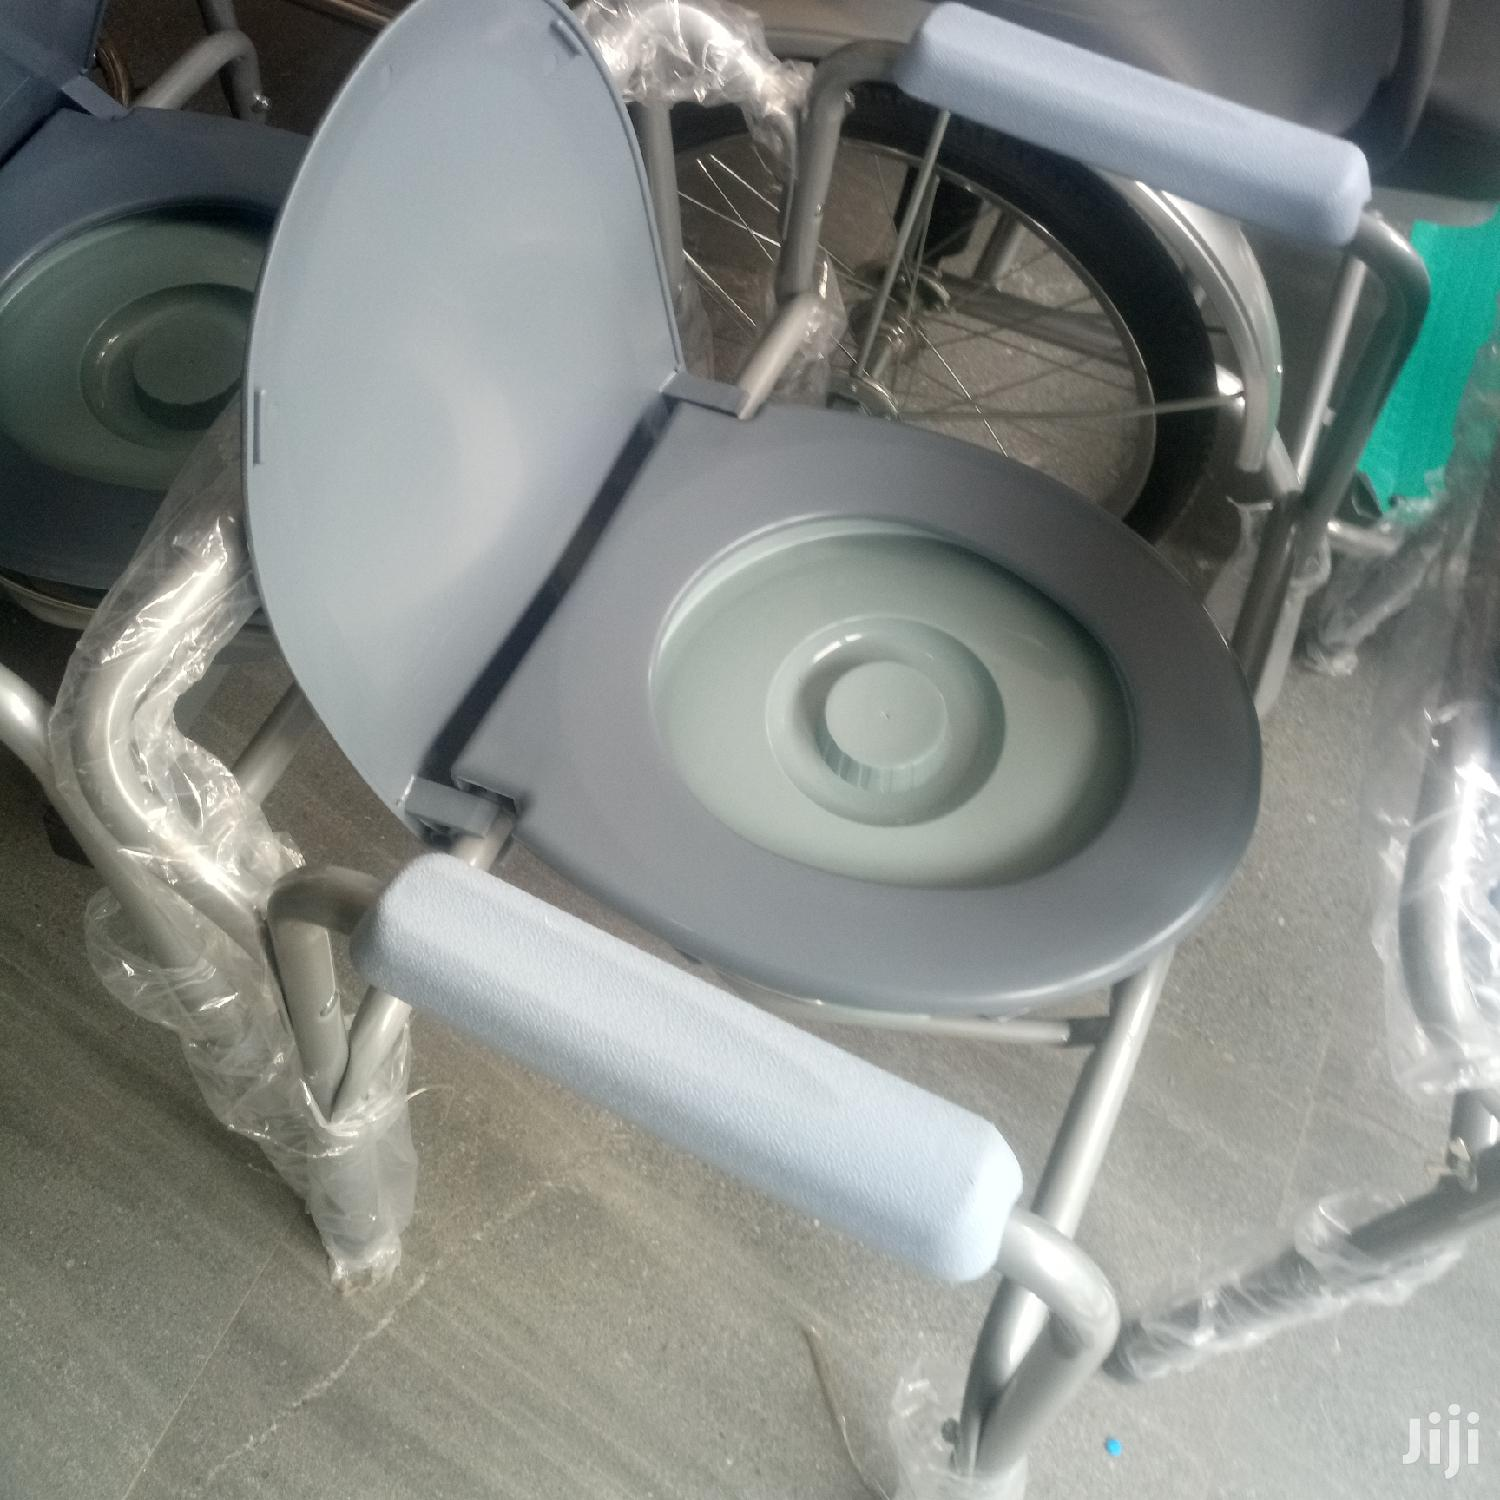 Commode Chair | Furniture for sale in Dansoman, Greater Accra, Ghana